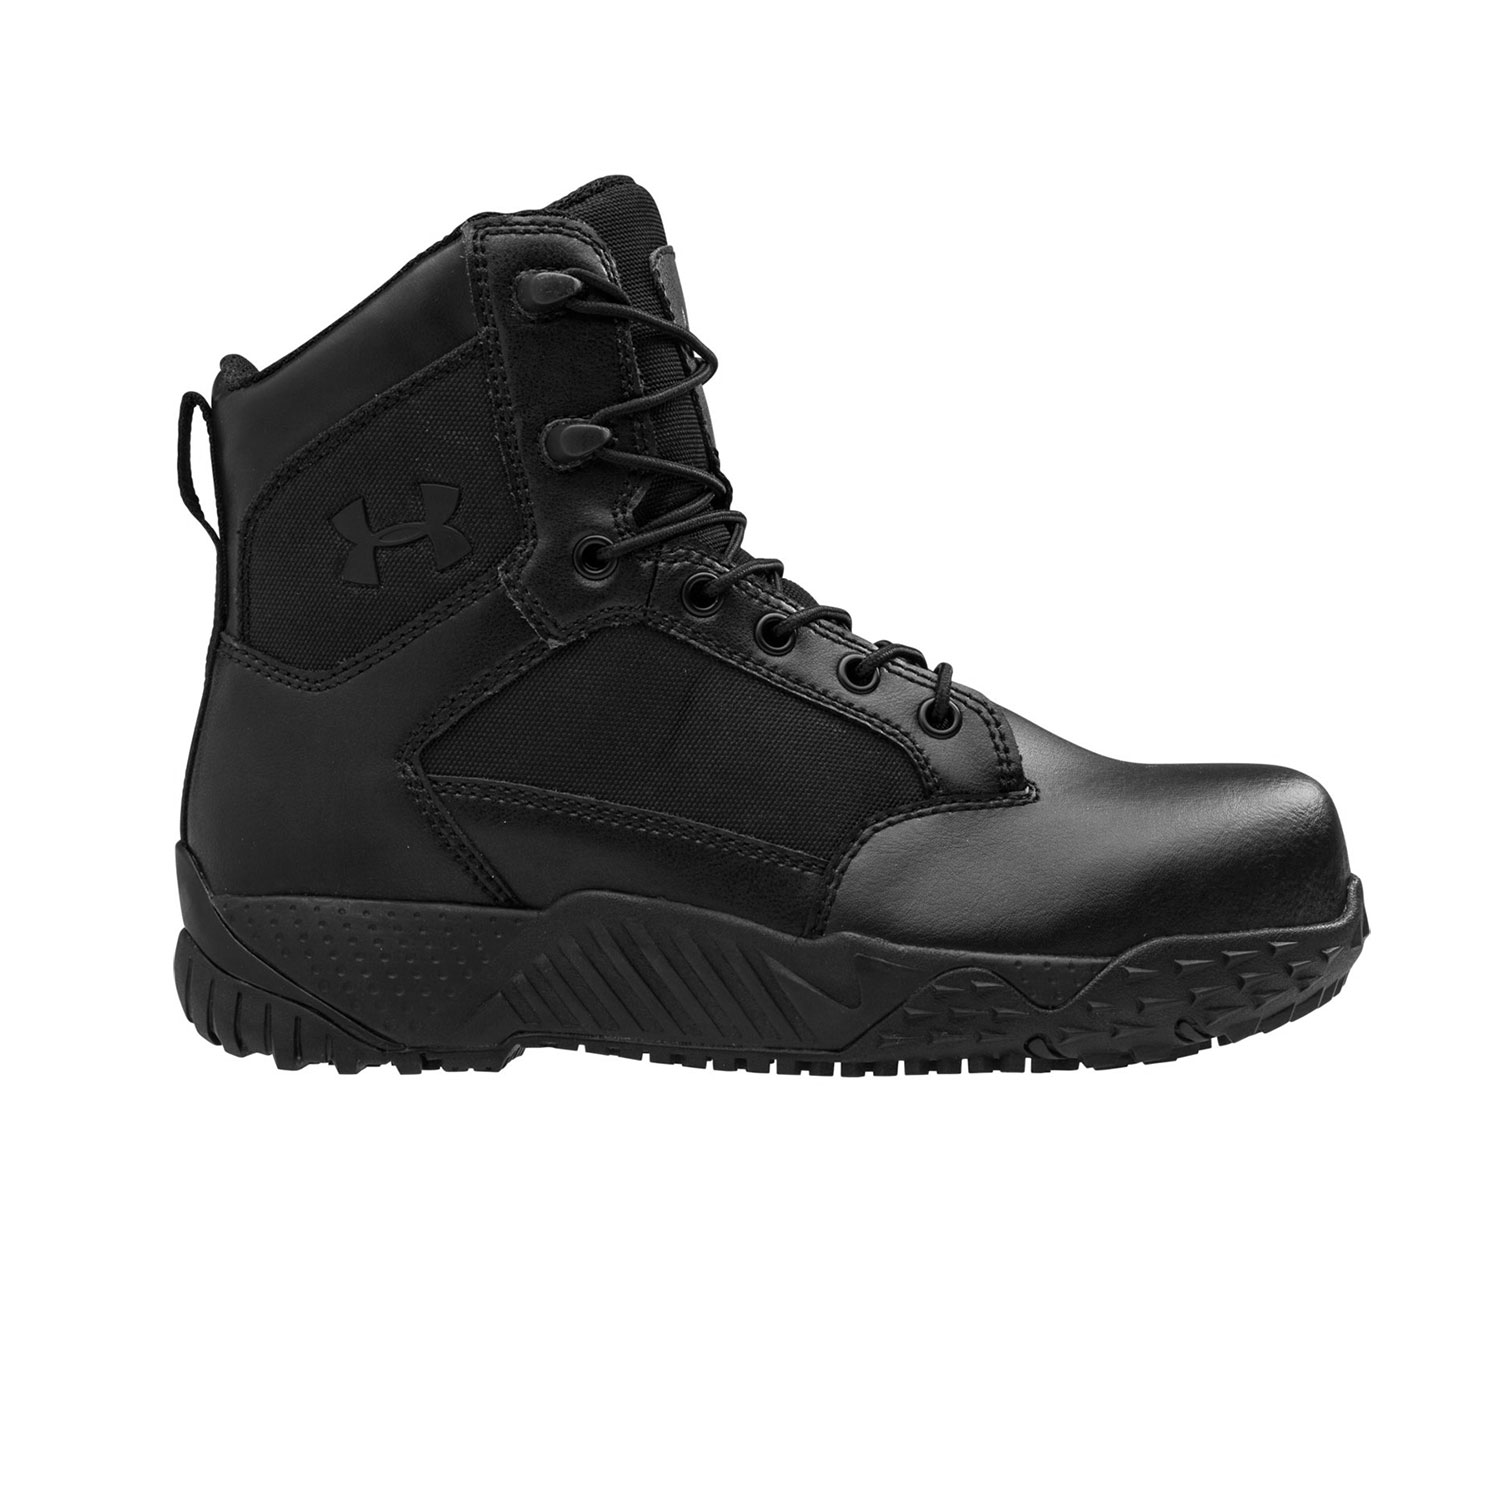 Under Armour Women's Stellar Tac Protect Composite Toe Boot